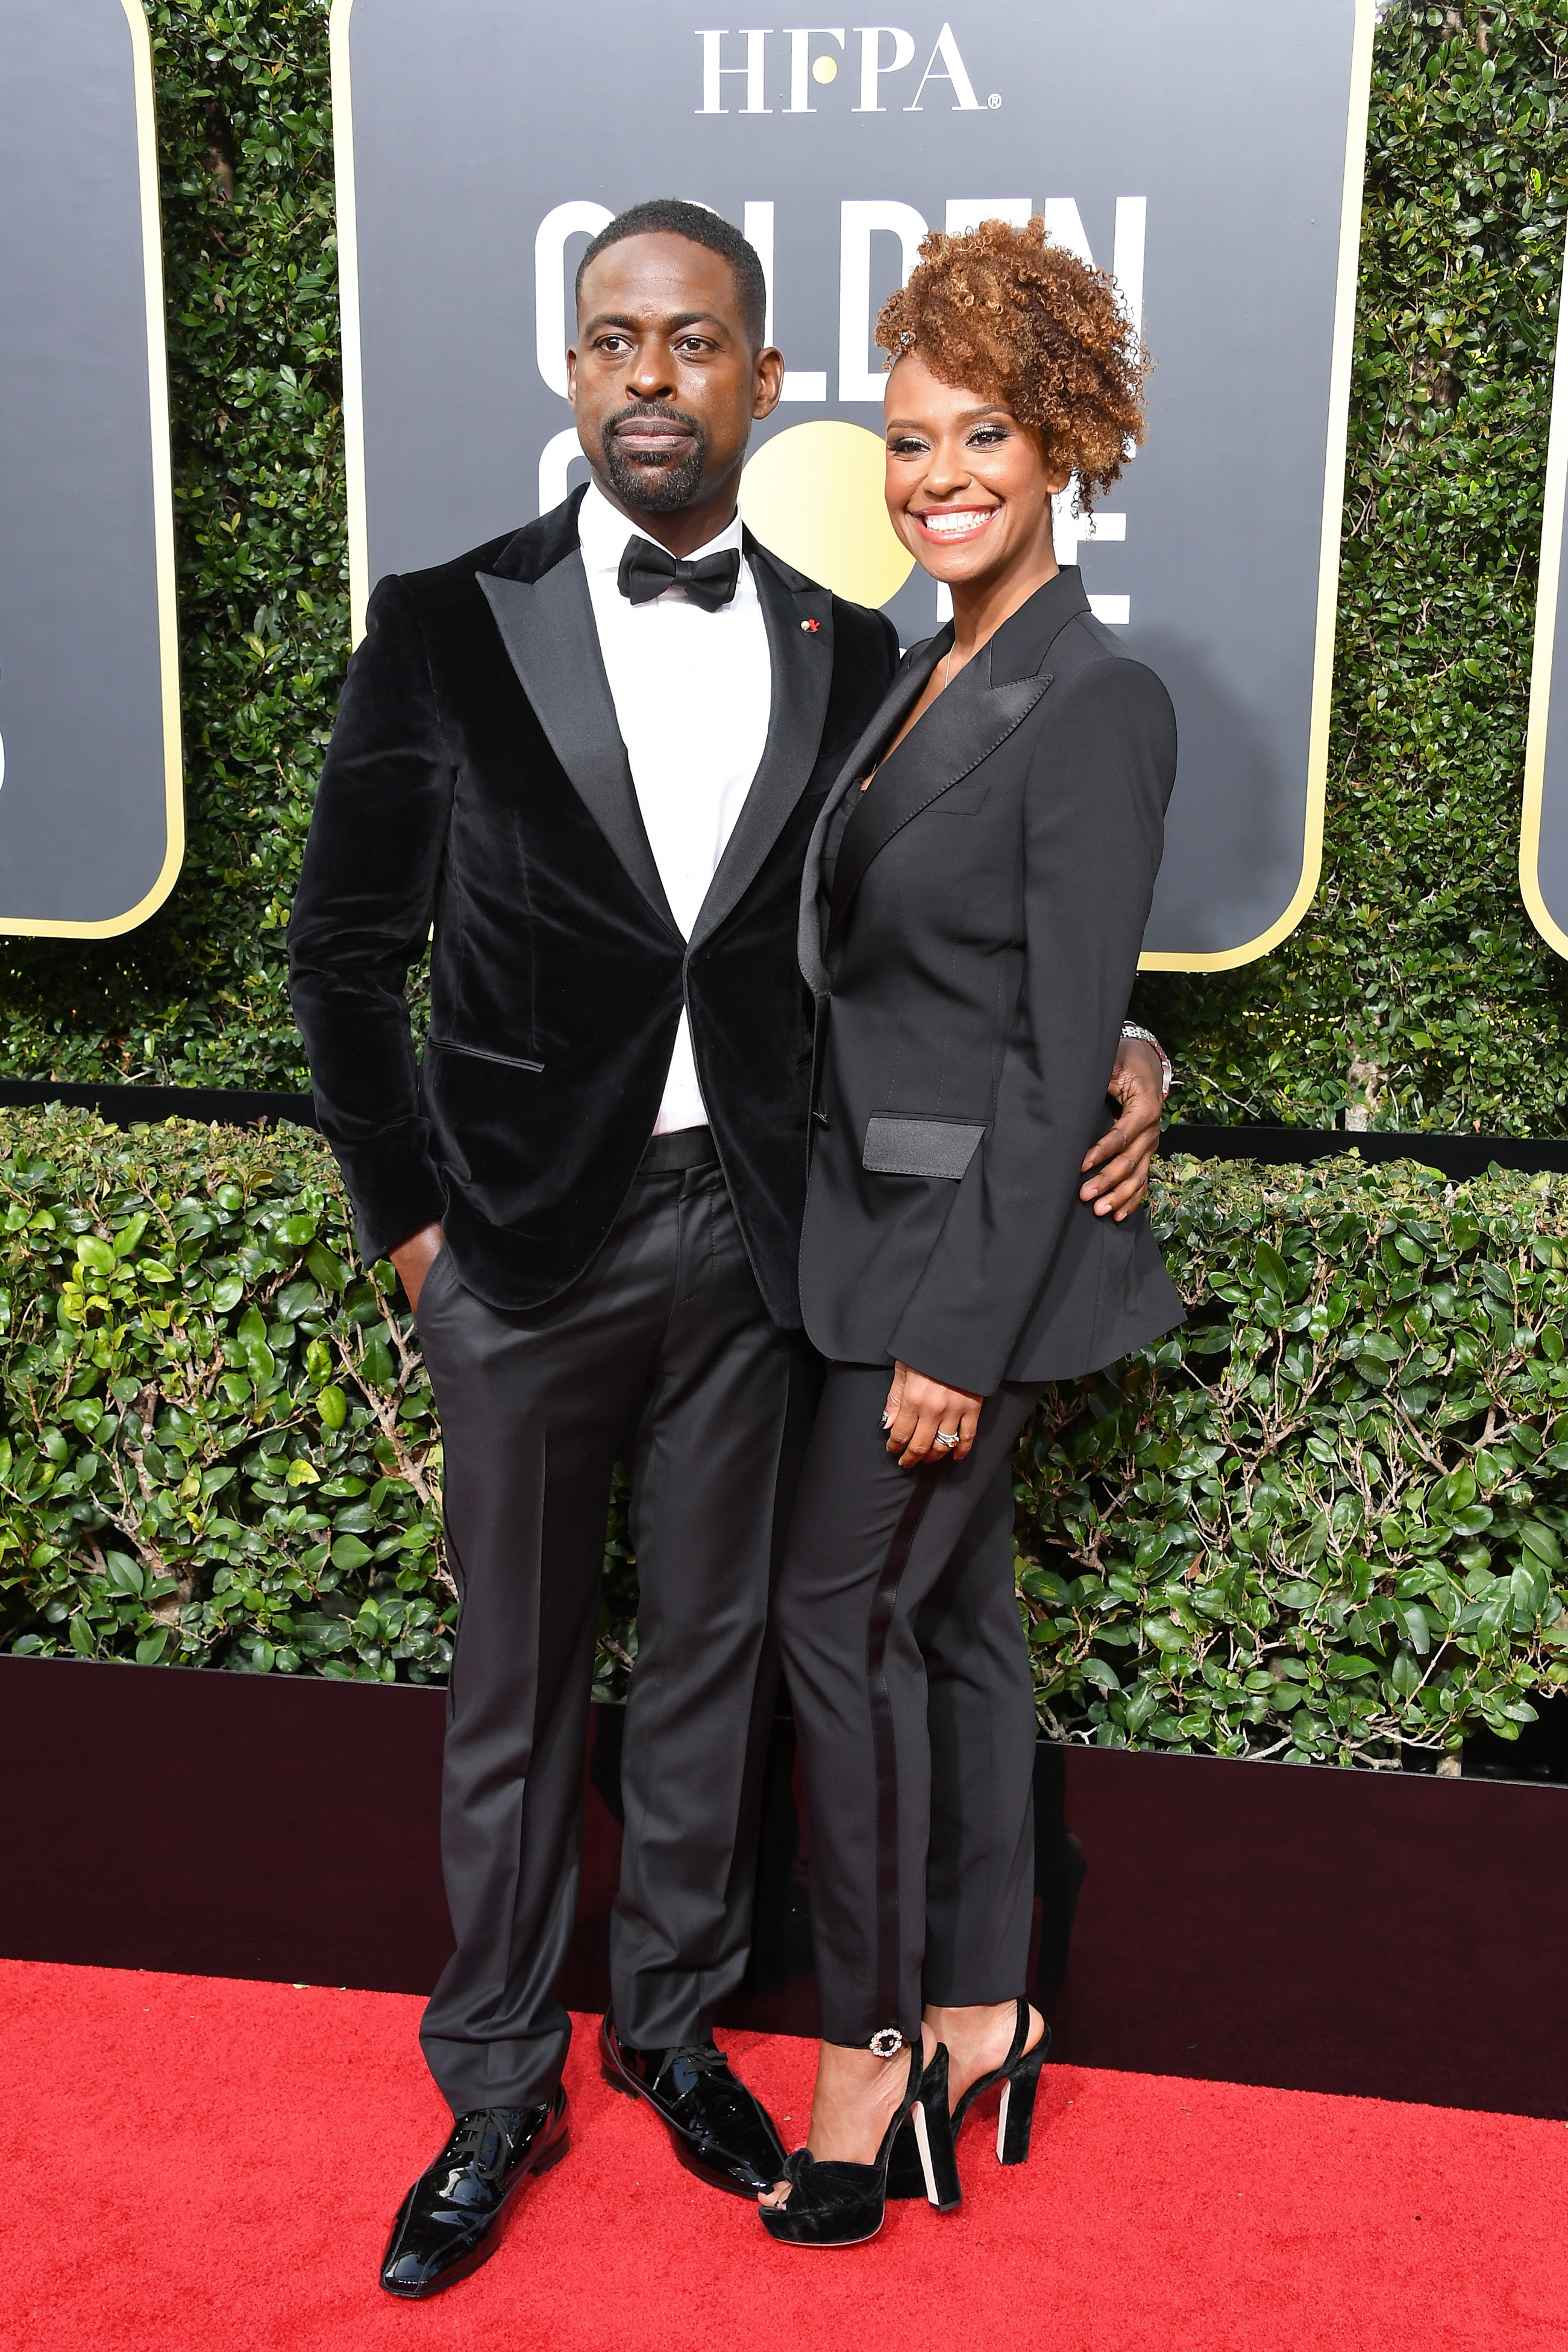 Sterling K. Brown and Ryan Michelle Bathe arrive to the 75th Annual Golden Globe Awards held at the Beverly Hilton Hotel on January 7, 2018